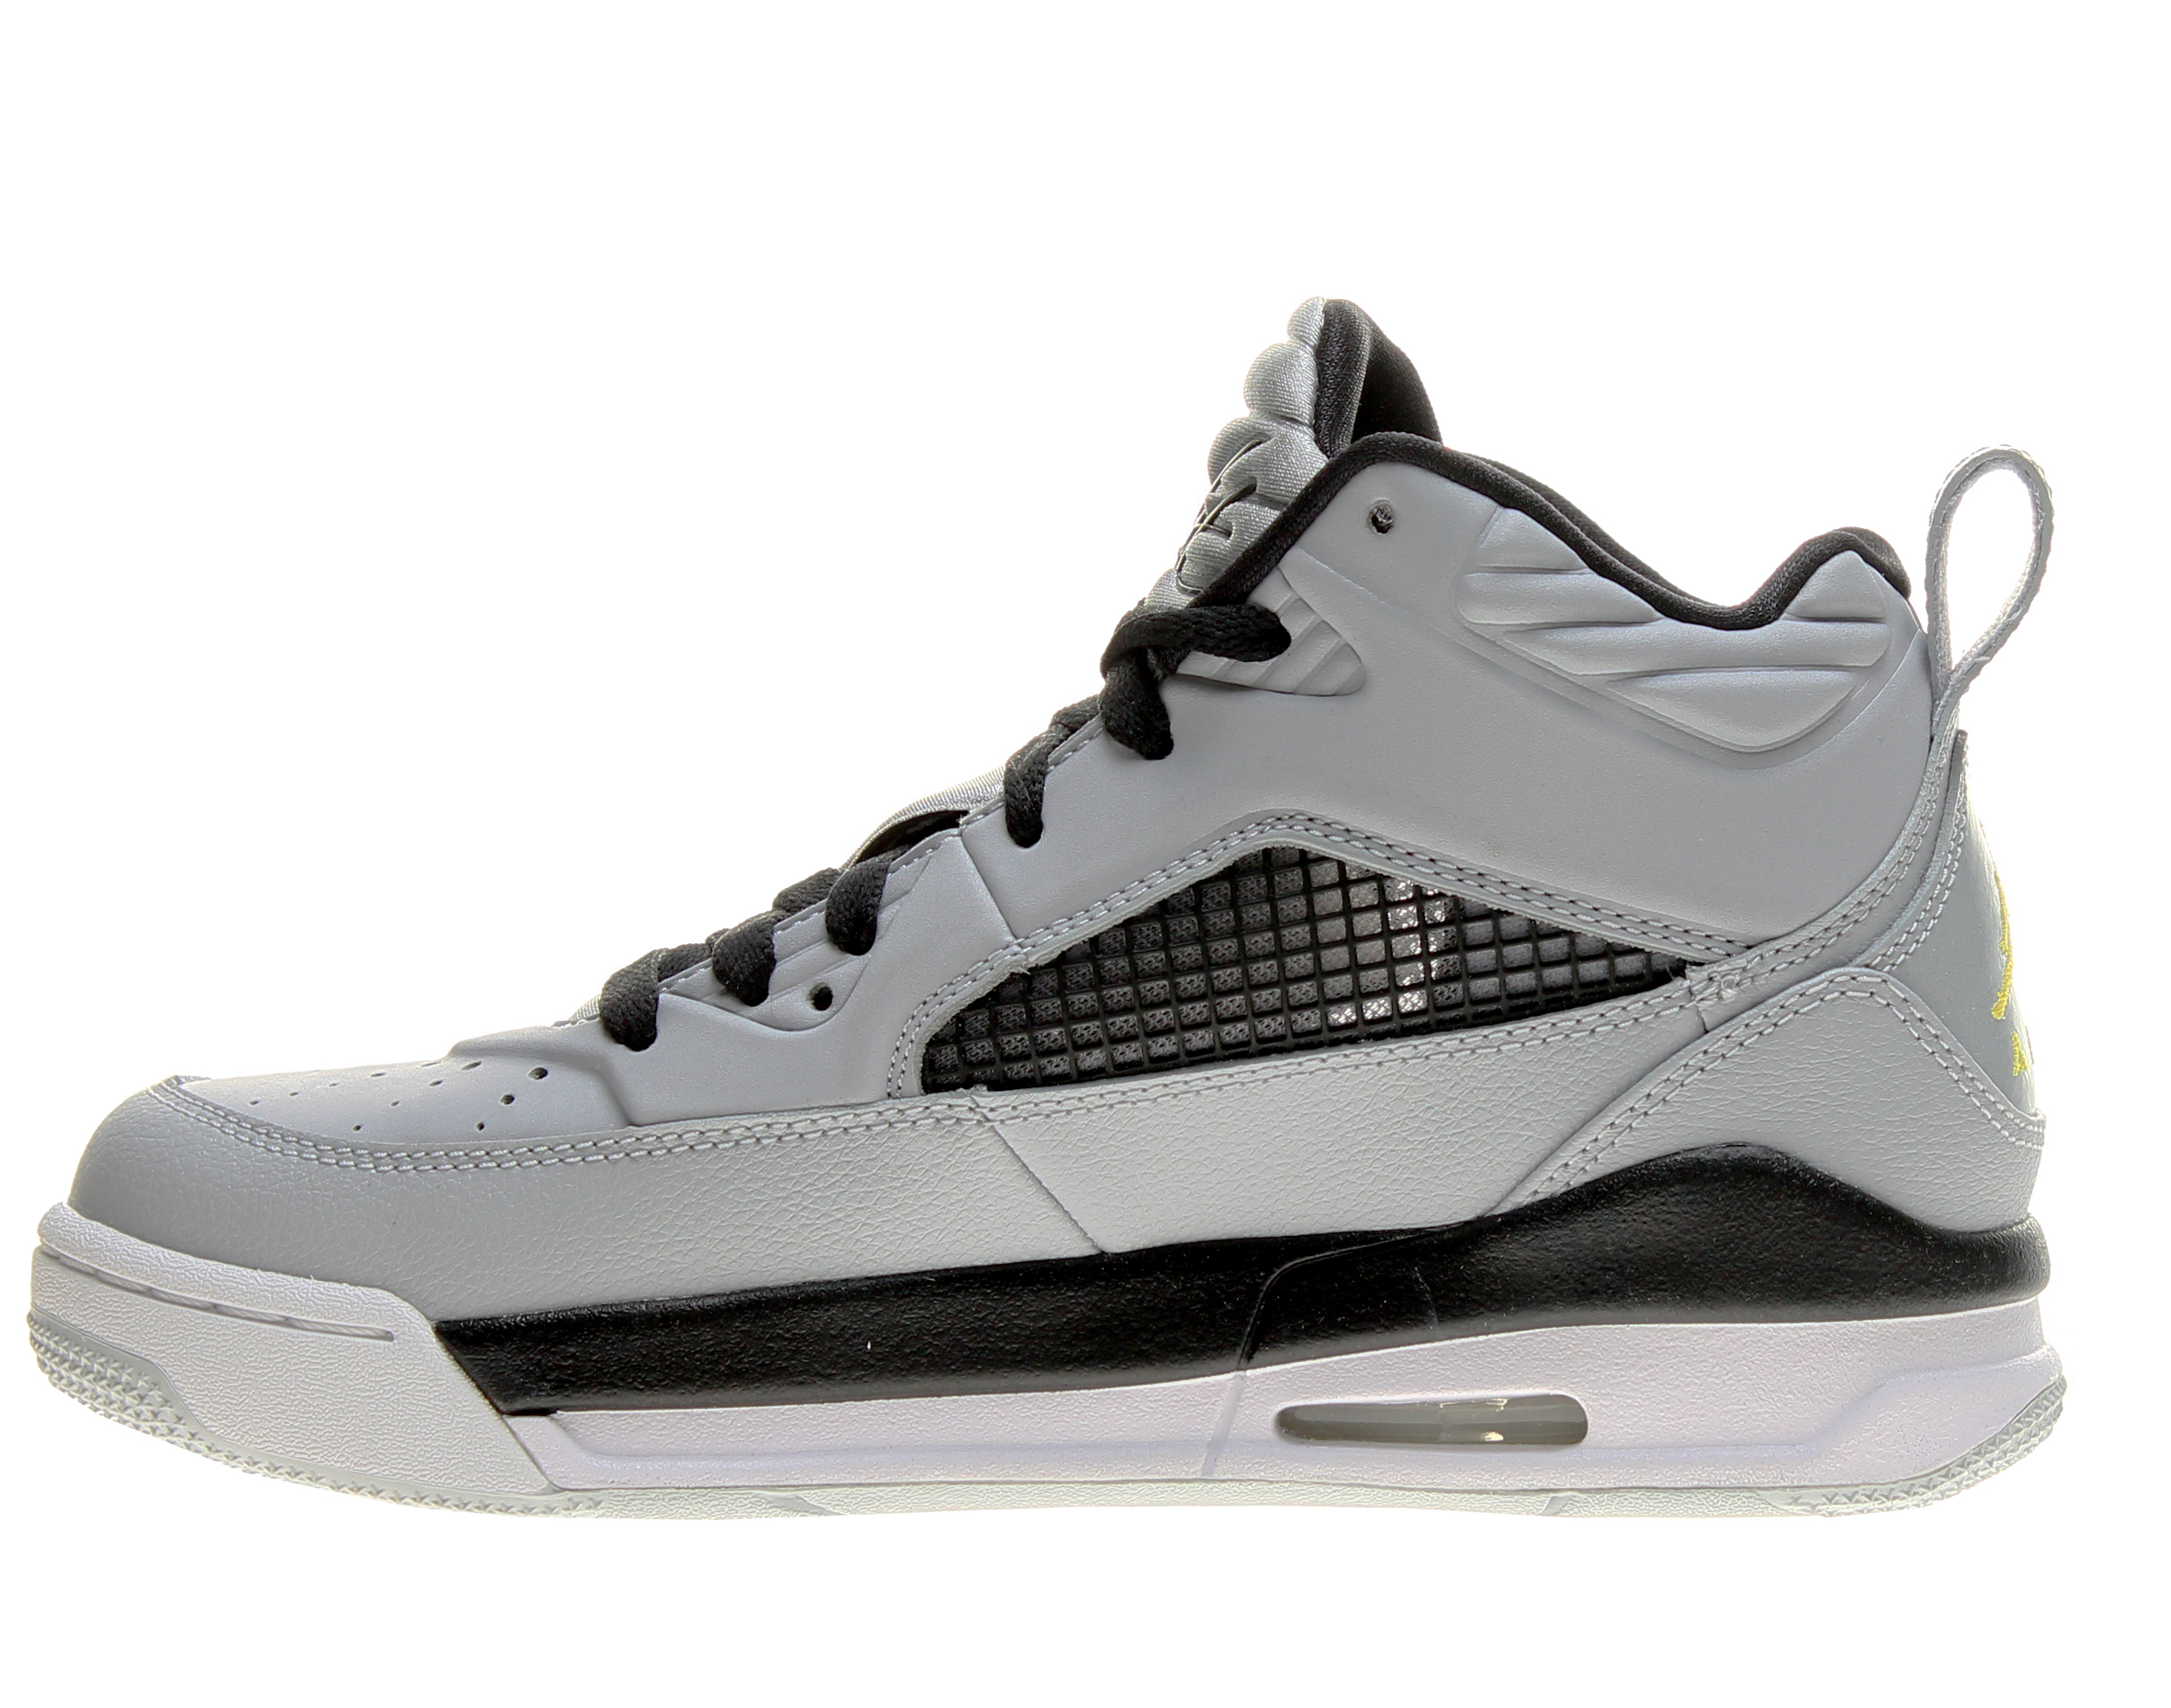 57bf1ef19c112c Jordan - Nike Air Jordan Flight 9.5 BG Grey Black Big Kids Basketball Shoes  654975-070 - Walmart.com